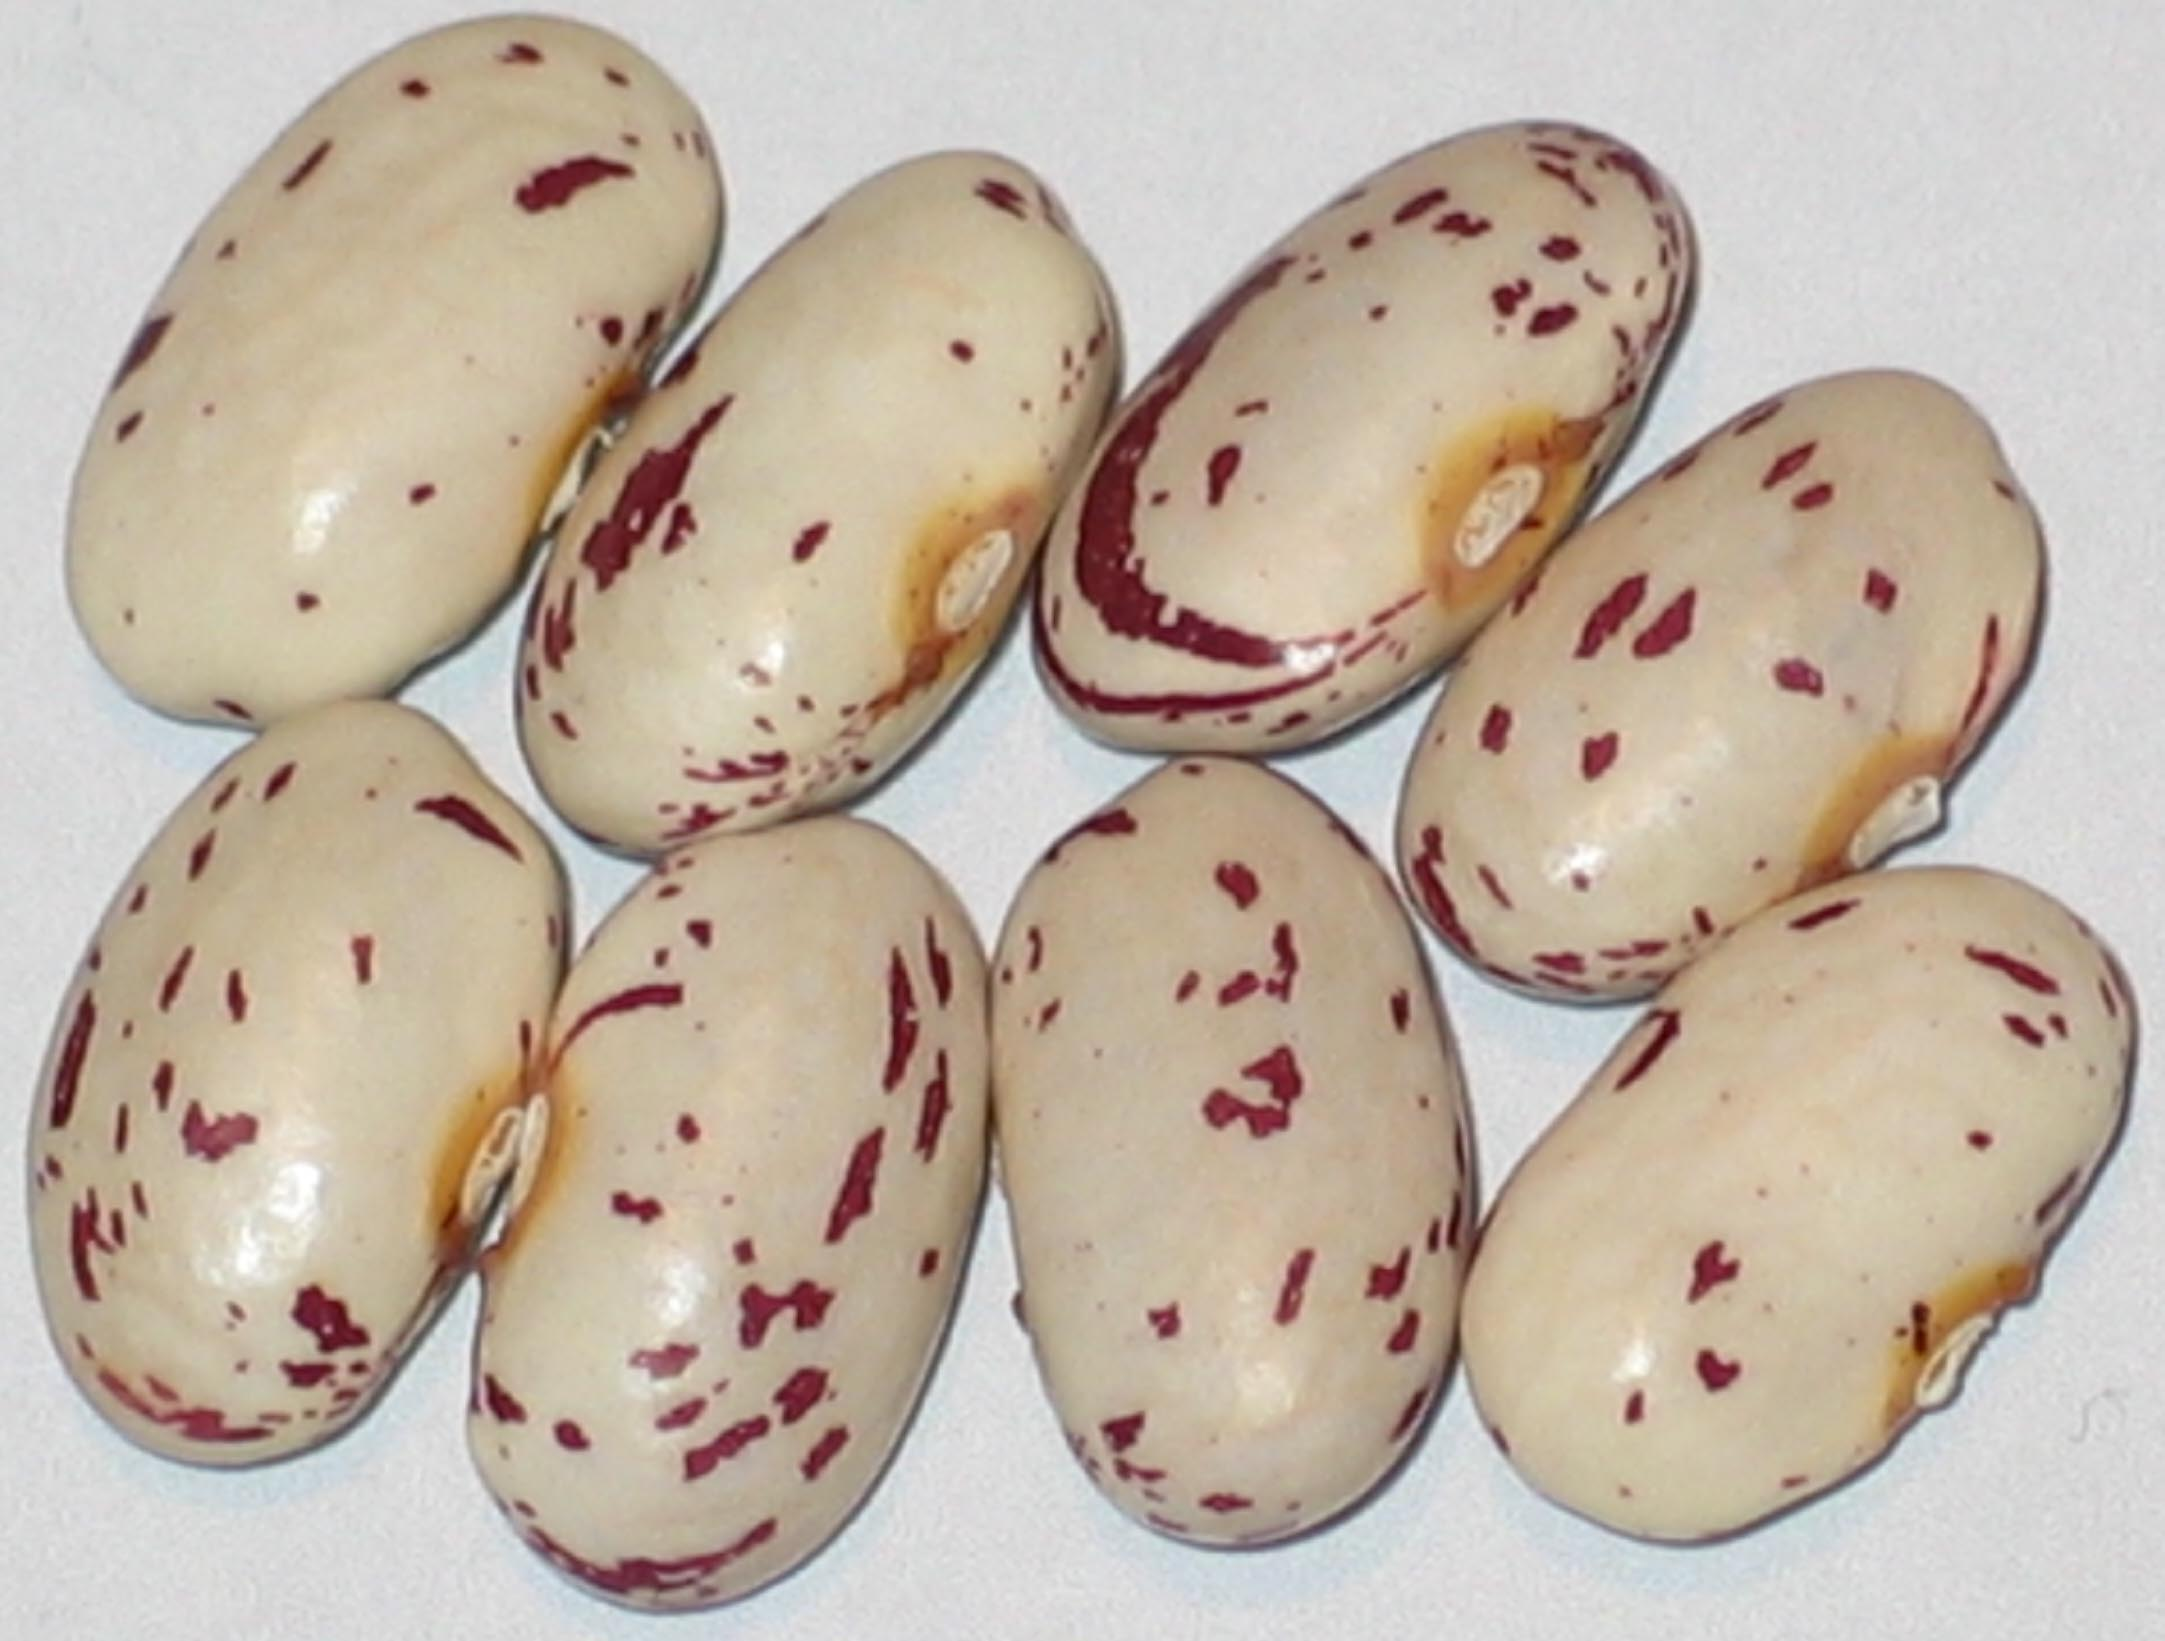 image of Gillenwater beans